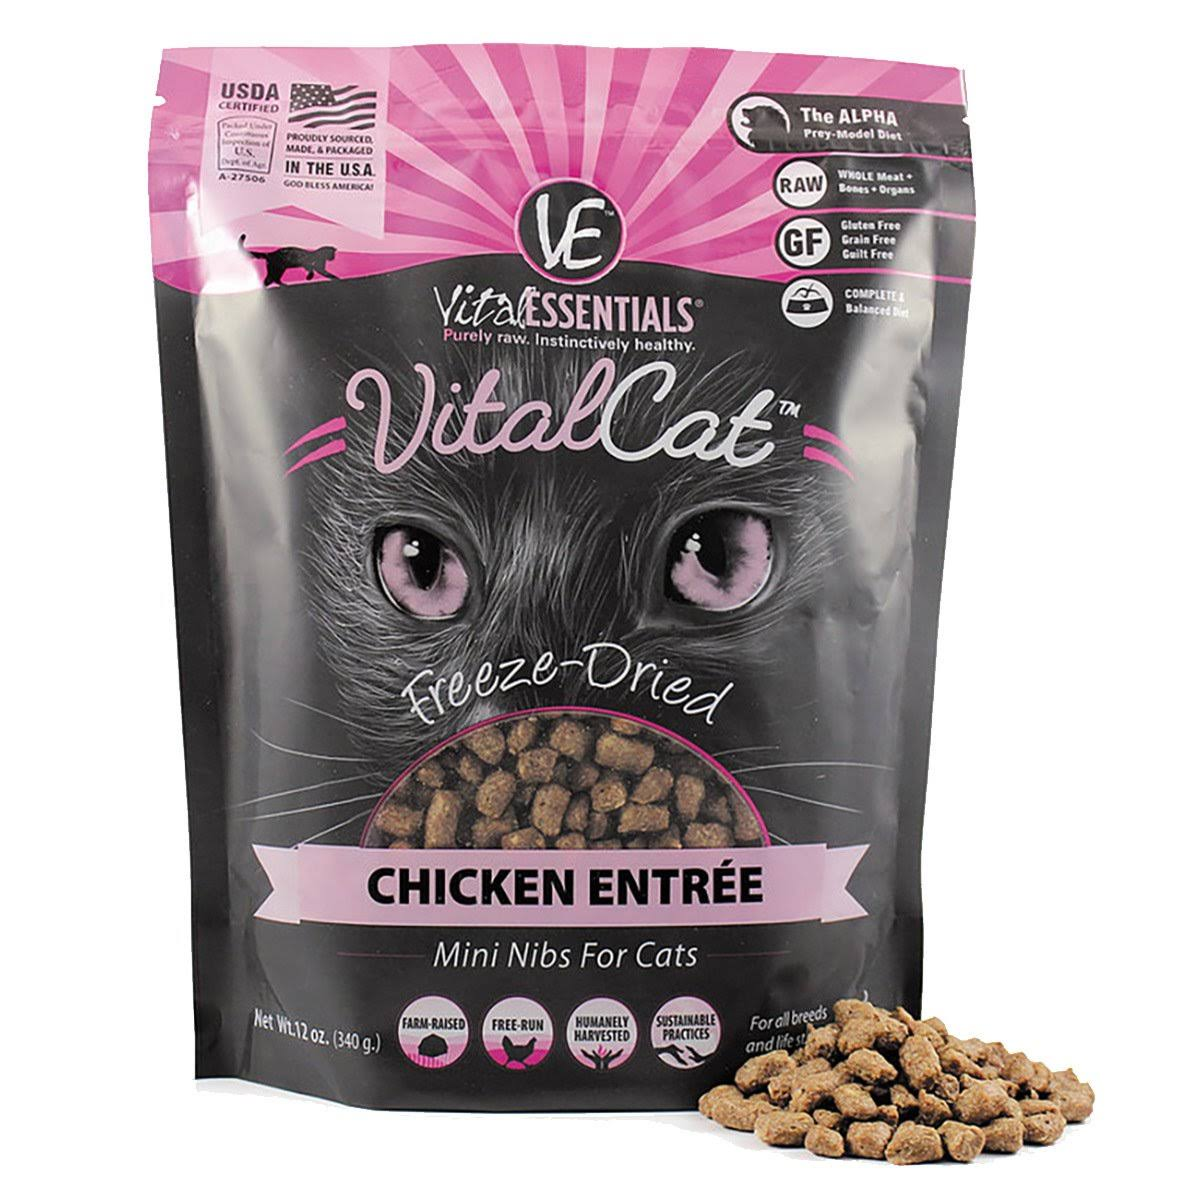 Vital Essentials Freeze-Dried Mini Nibs Chicken Entree Cat Food - 12oz